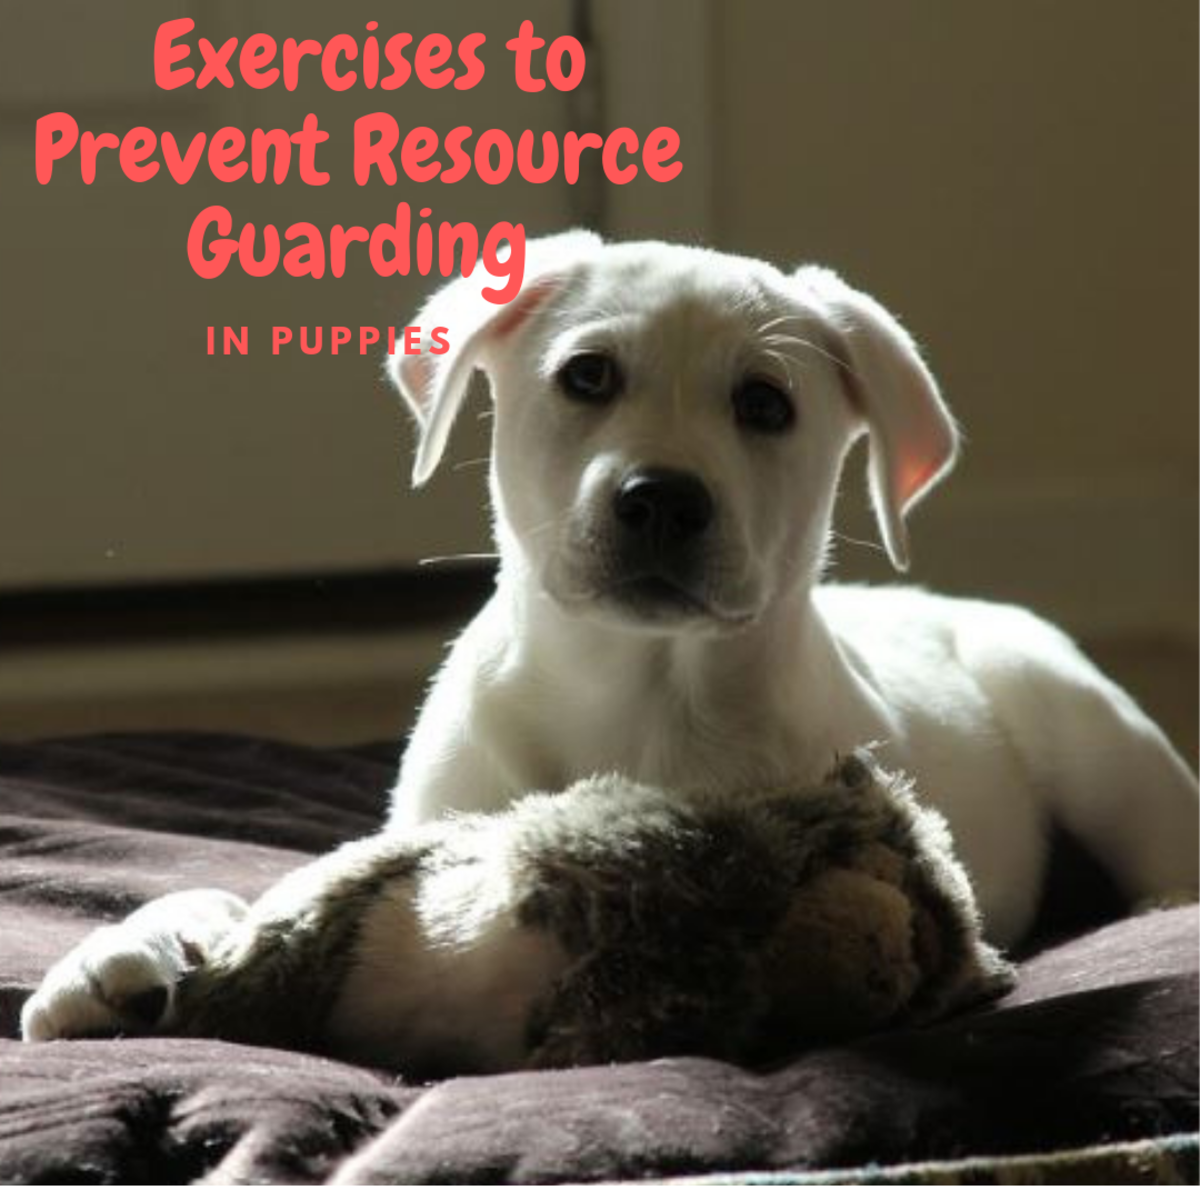 preventing-resource-guarding-in-puppies